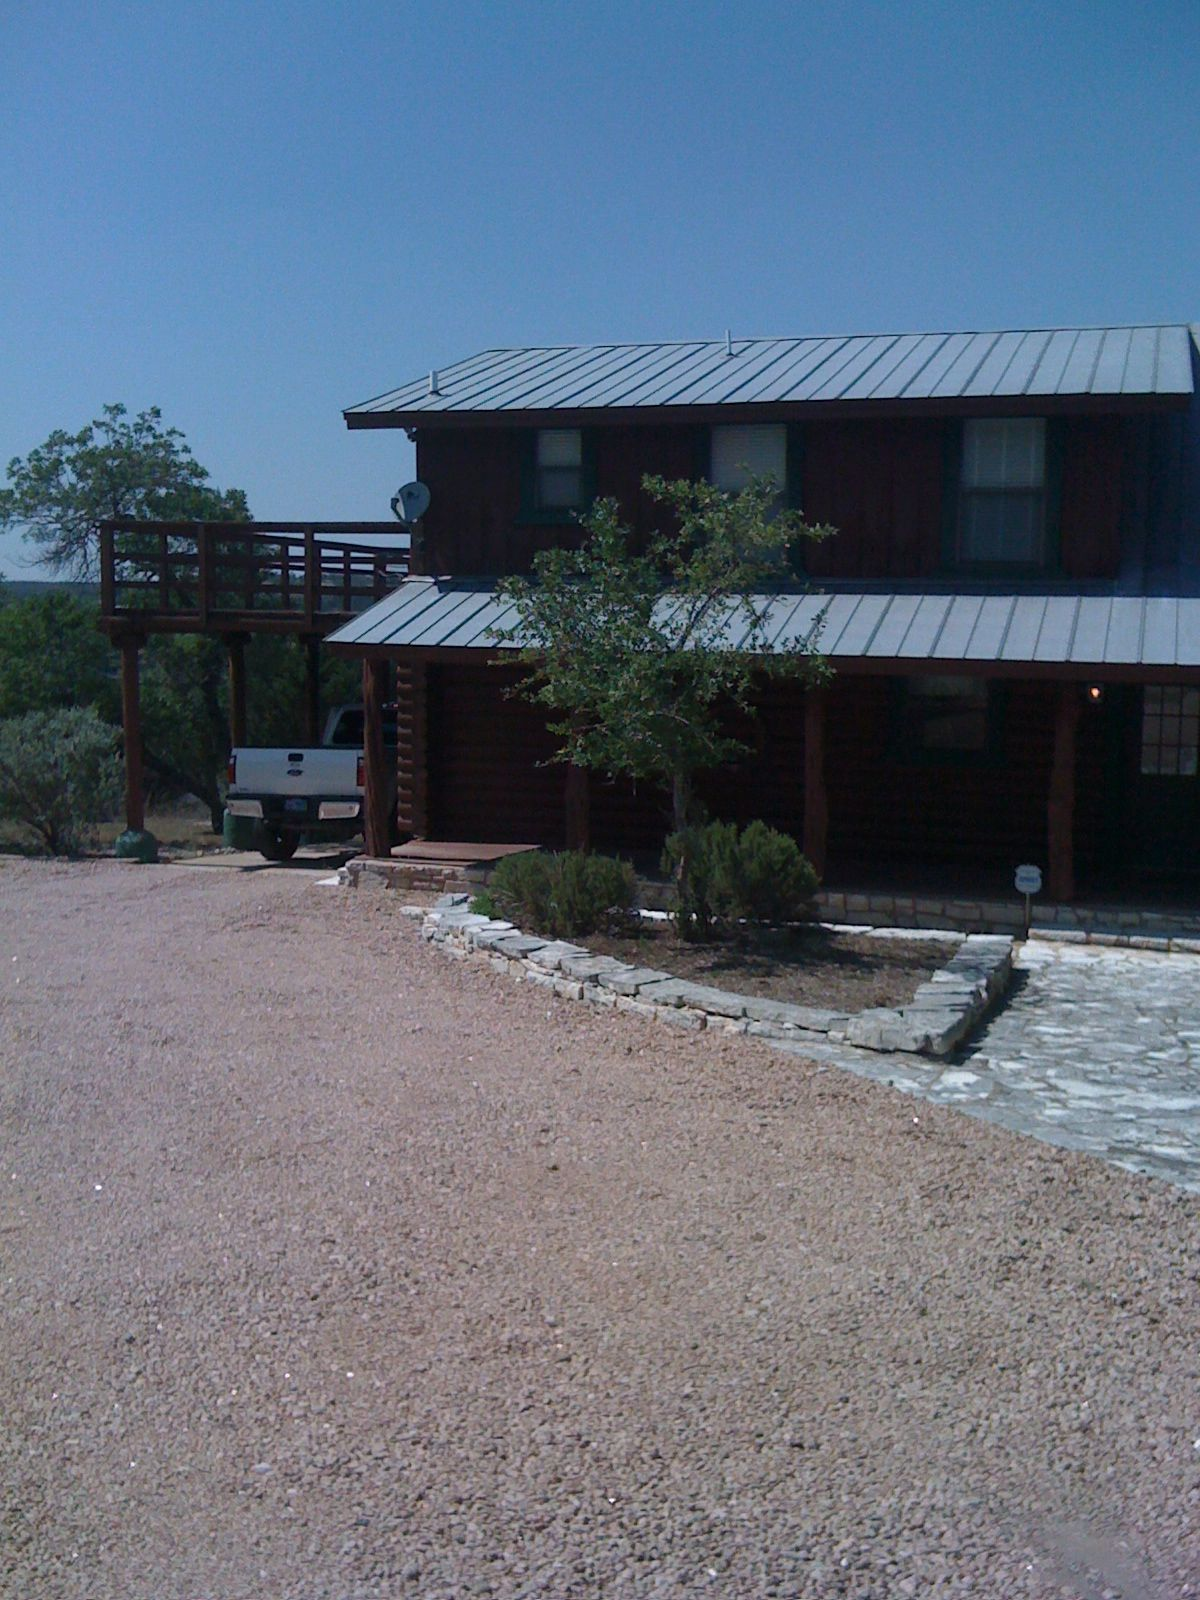 of in inn by lodge weddings provided the cottages country fredricksburg tx fredericksburg at cottage wedding venue picture